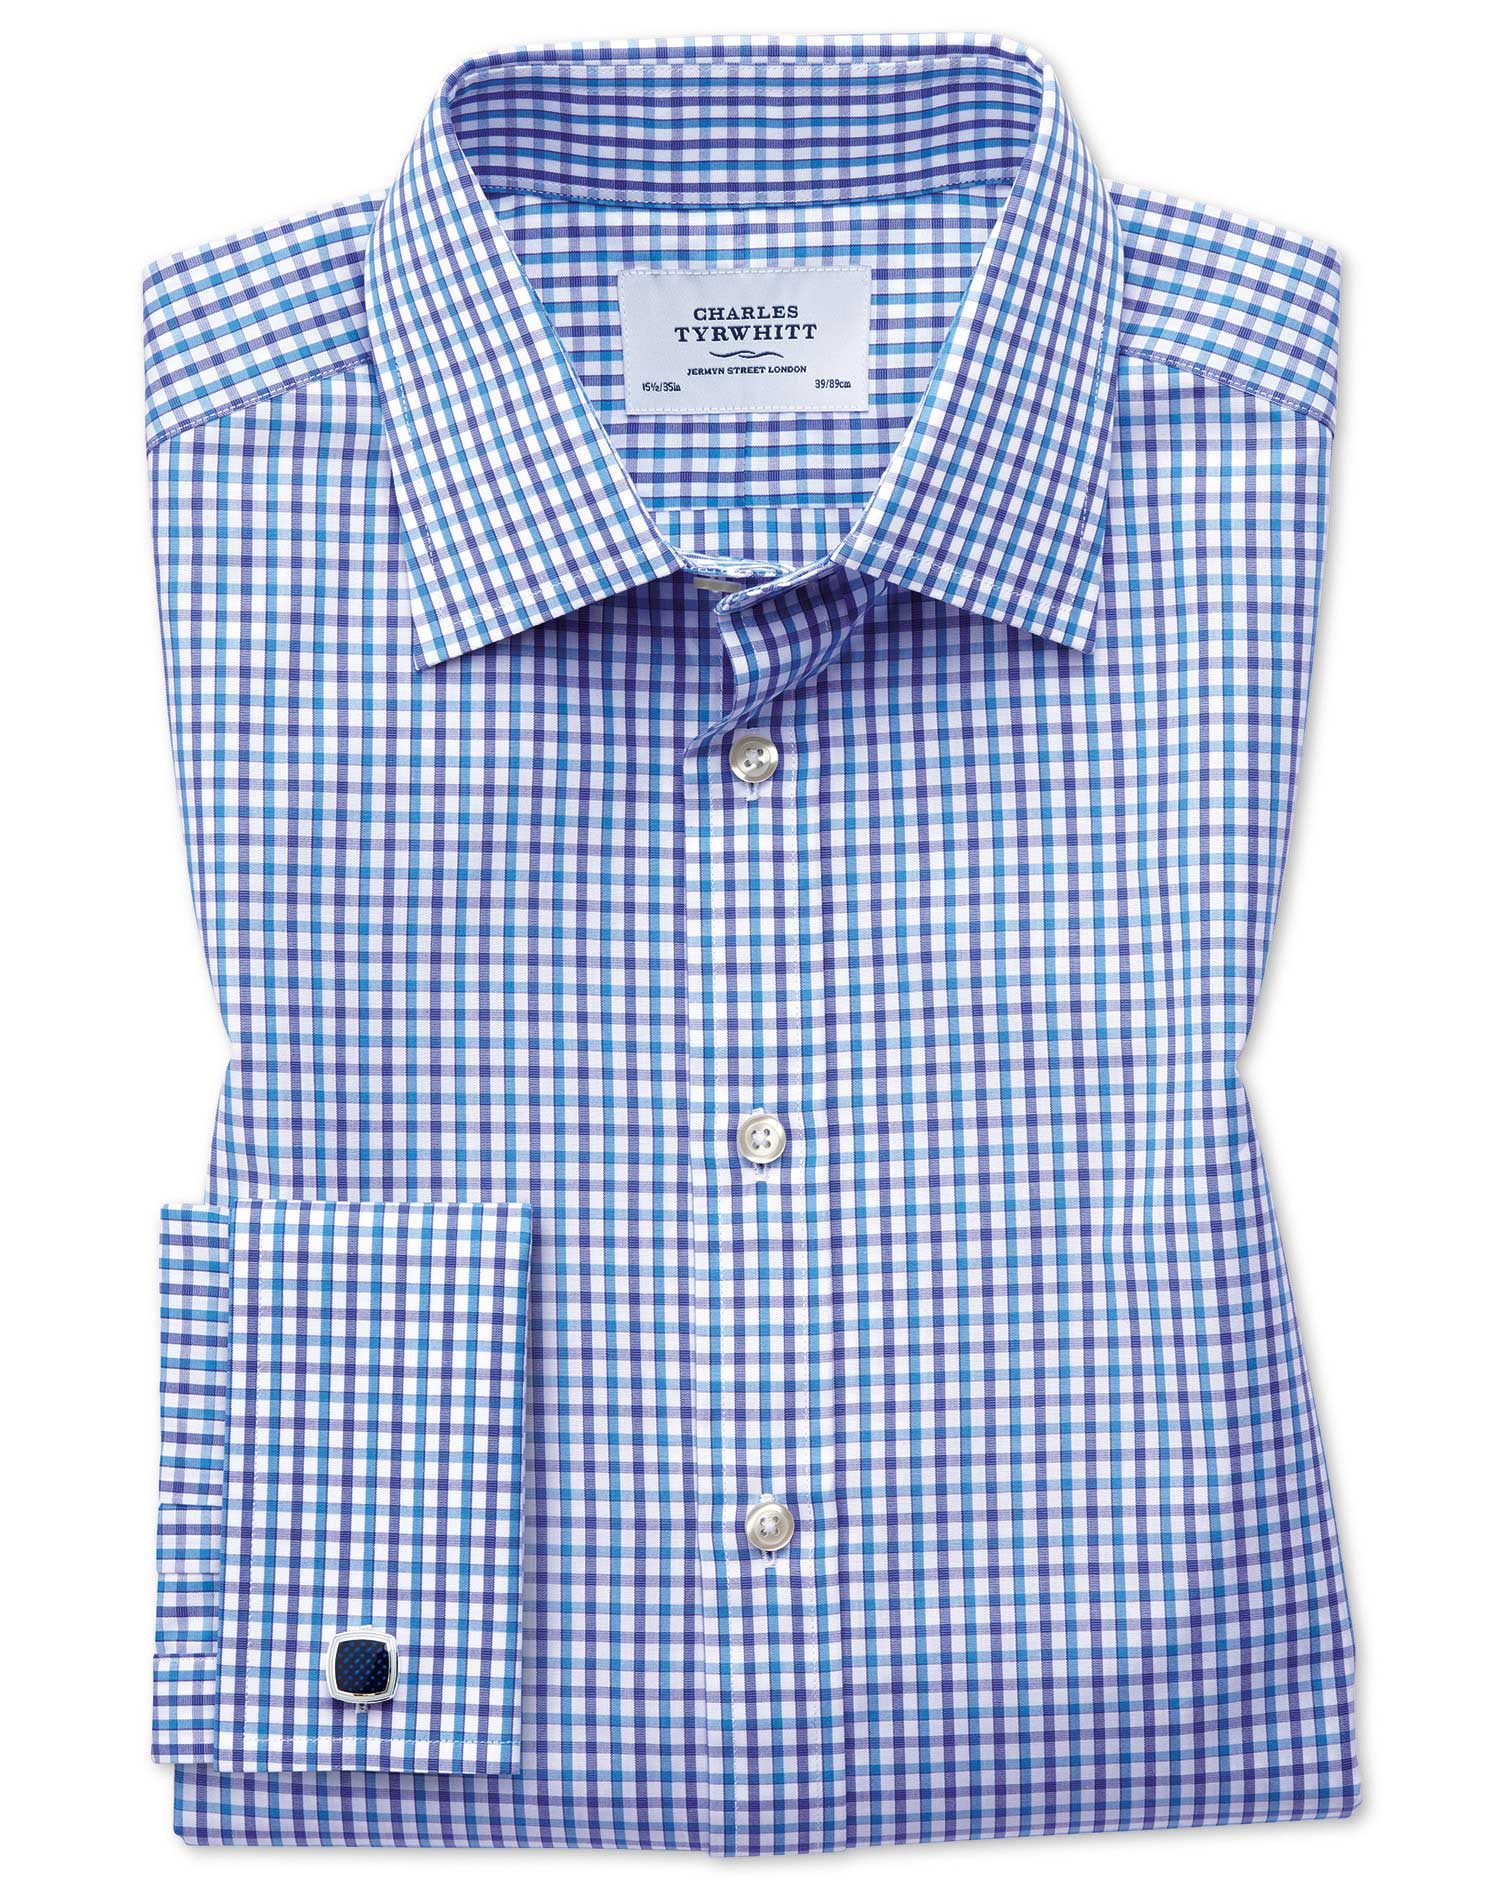 Slim Fit Two Colour Check Blue Cotton Formal Shirt Single Cuff Size 16.5/33 by Charles Tyrwhitt